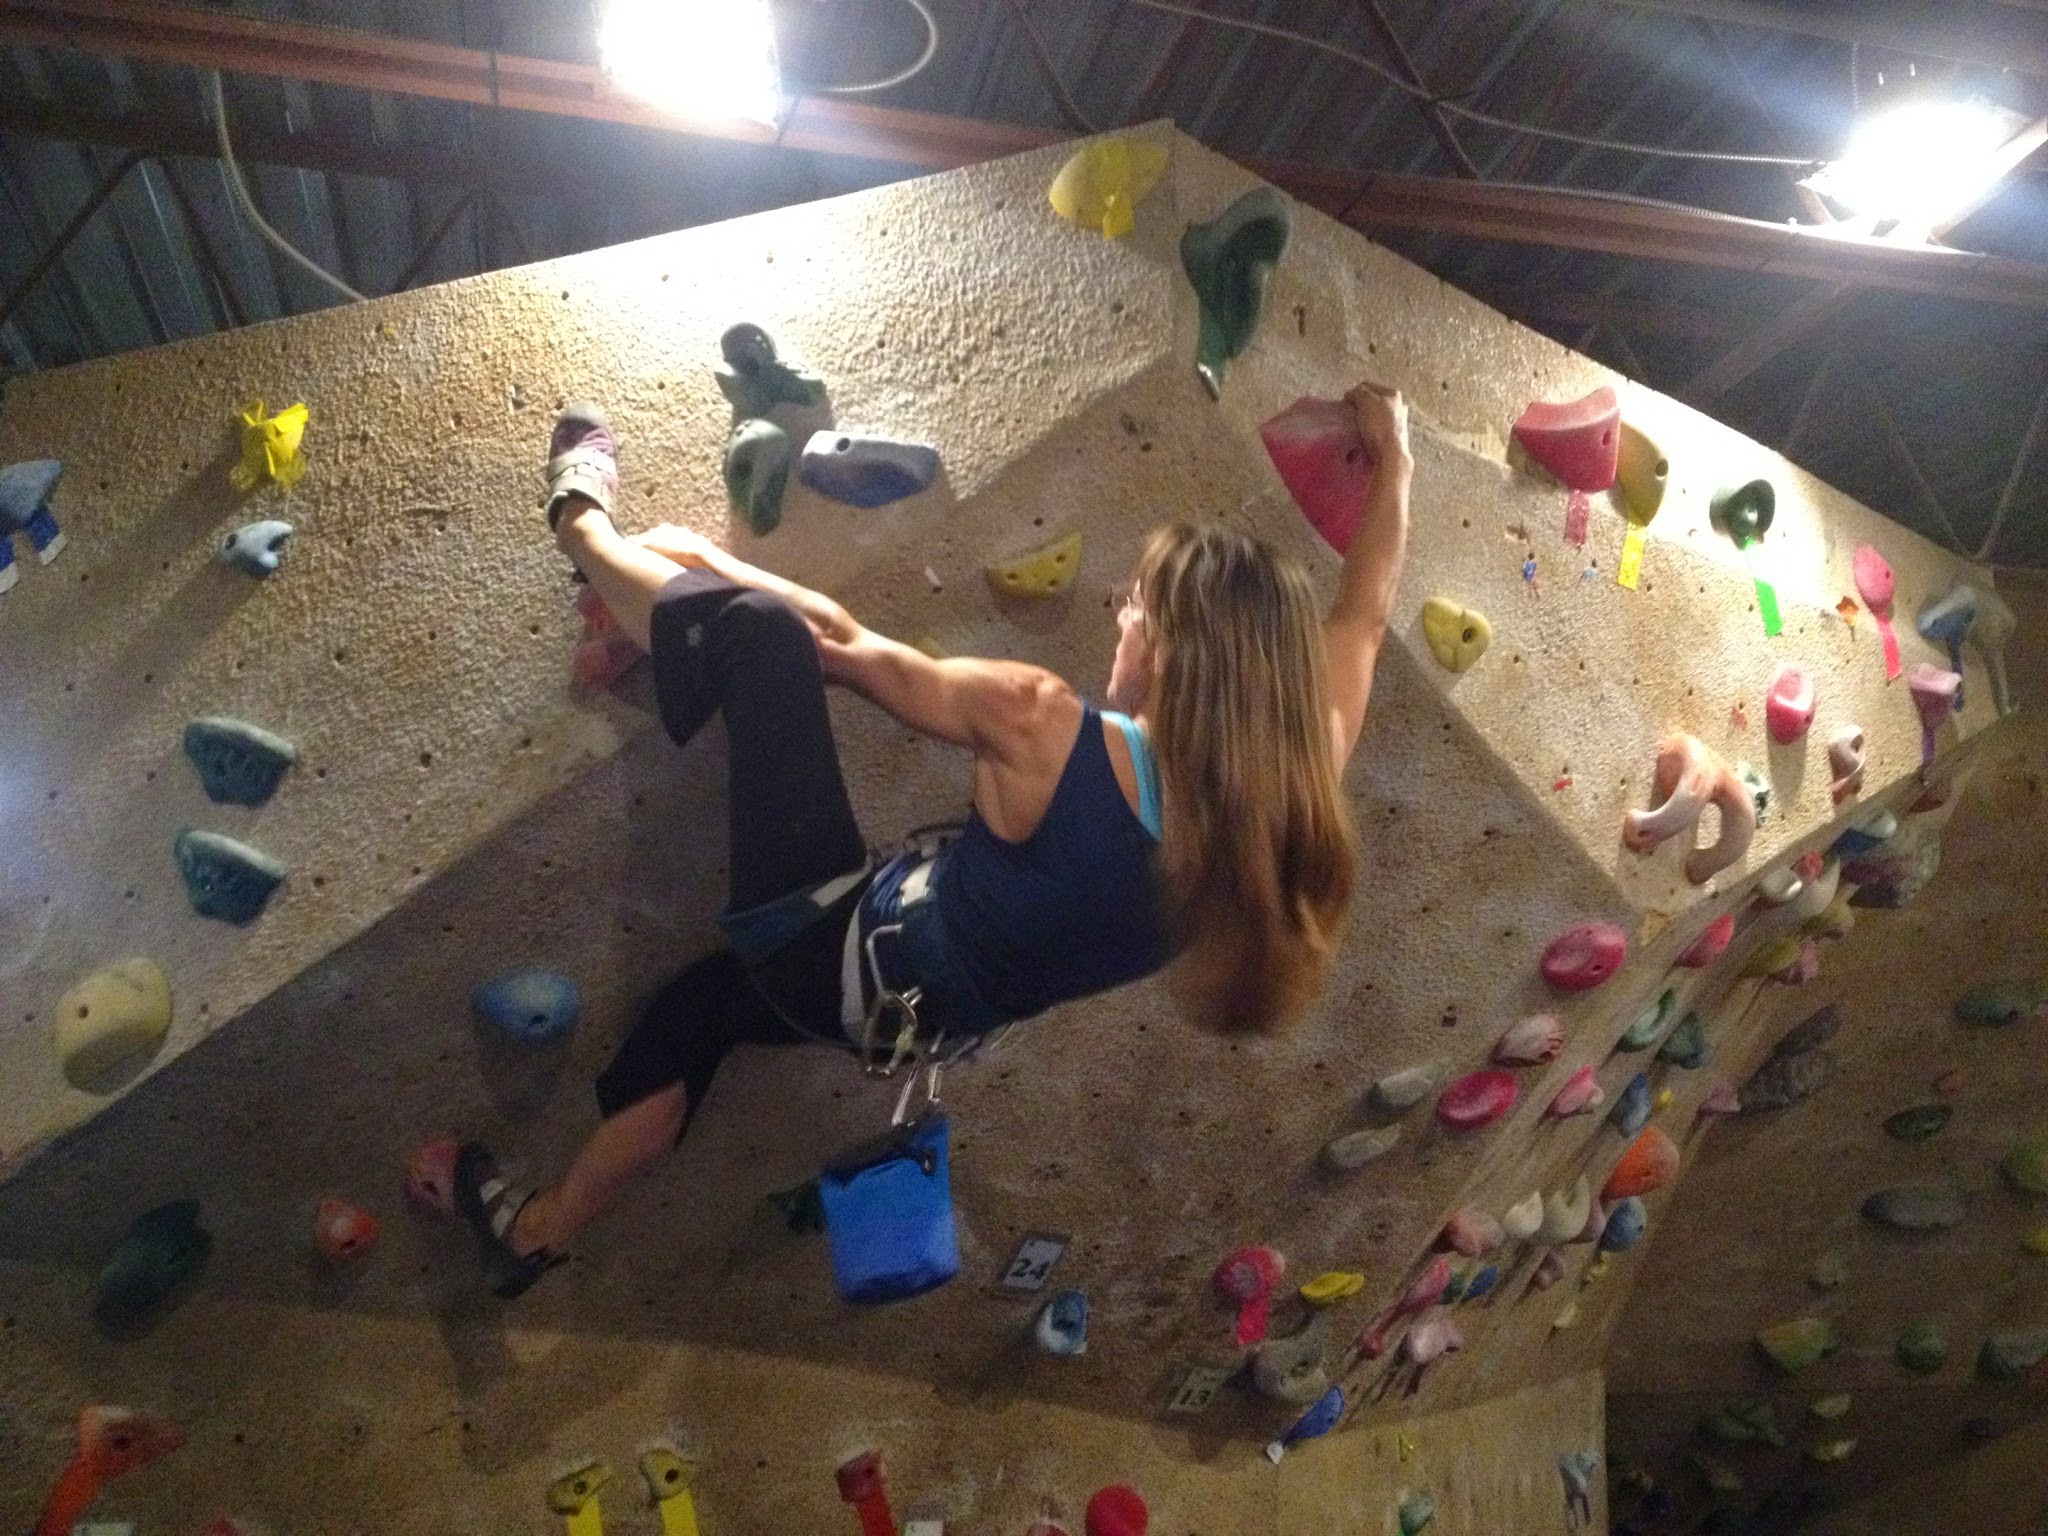 Bouldering Indoors Badly: The Dark Art Of Hauling Oneself Up A Wall Using  Fake Holds, Leaping For The Last Hold Up Under The Roof/overhang/tunnel  Entrance ...